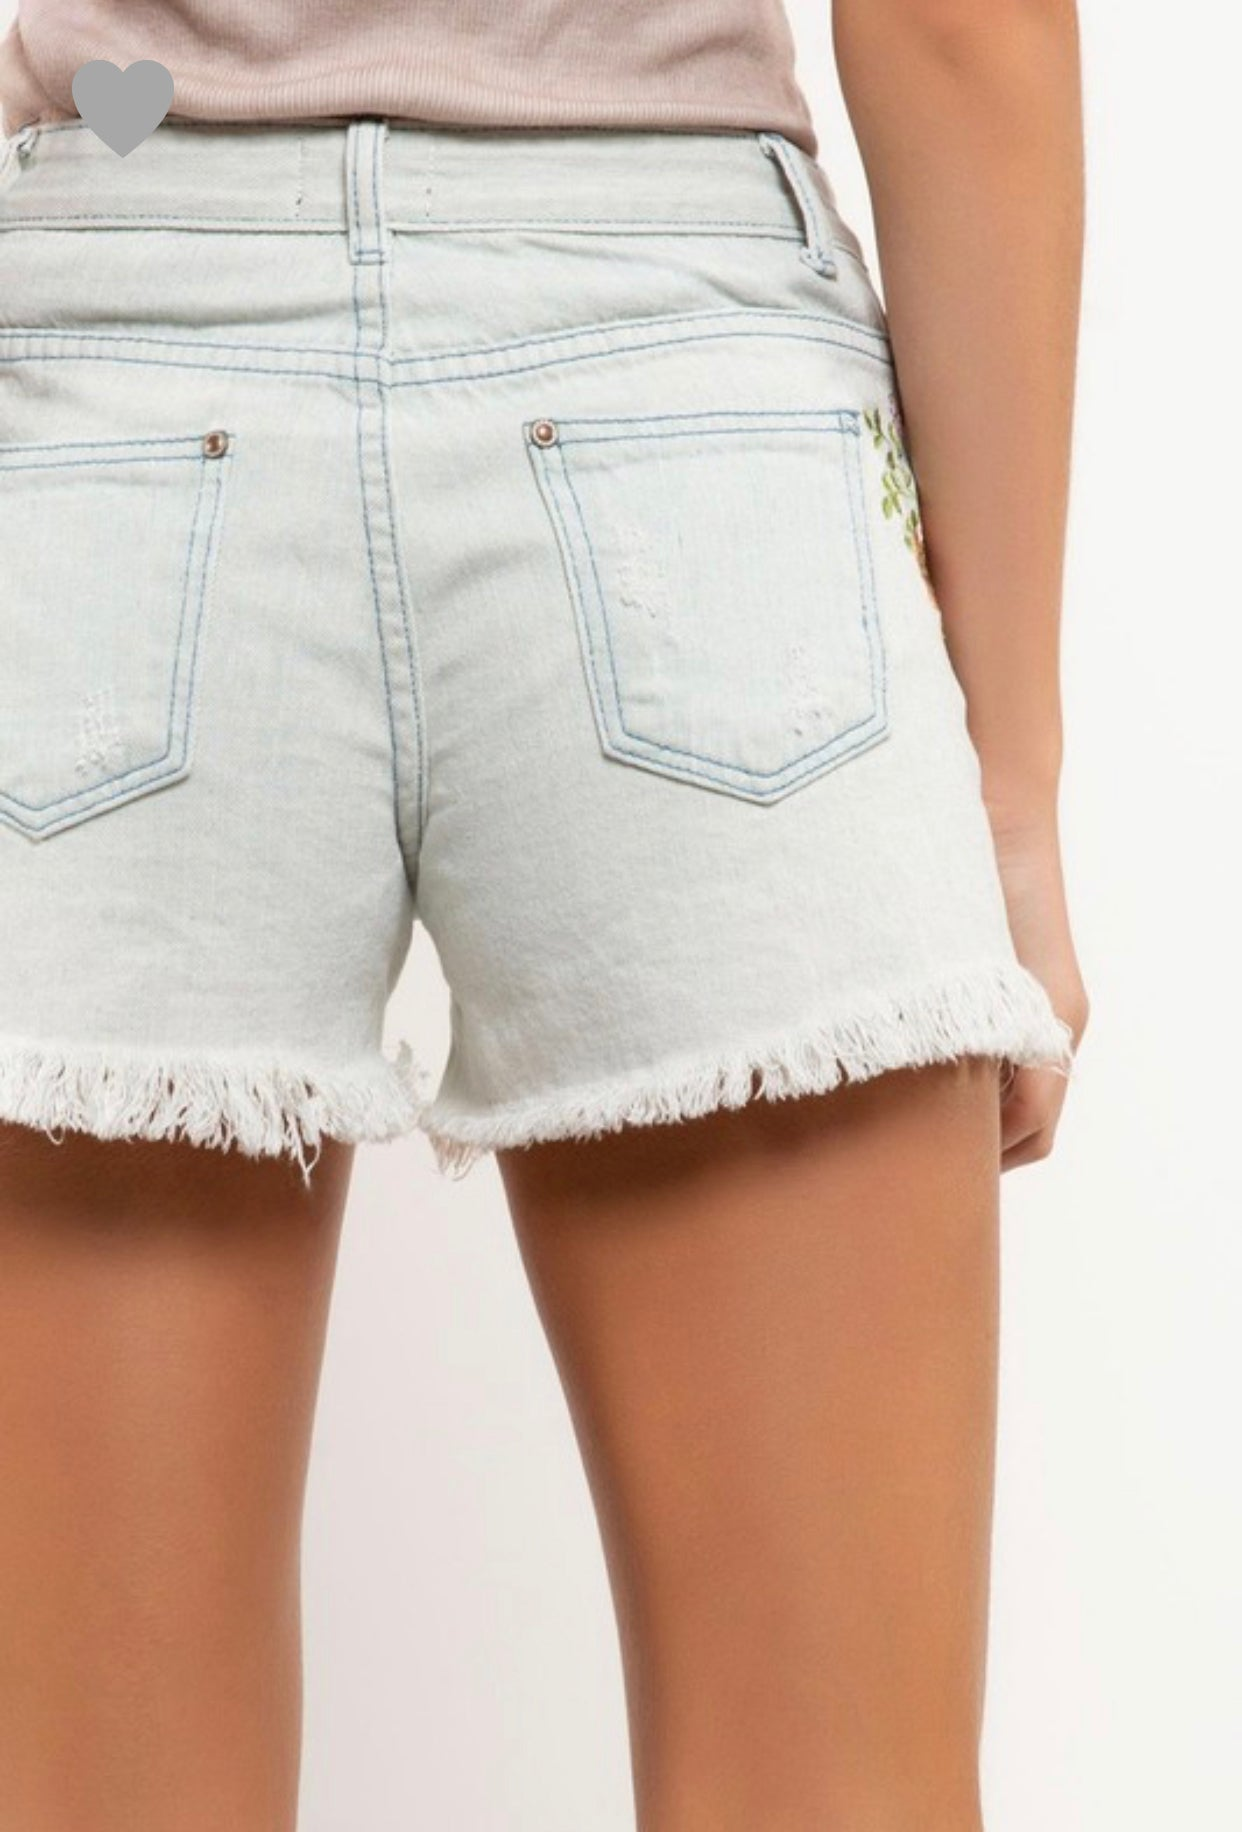 Distressed floral denim shorts